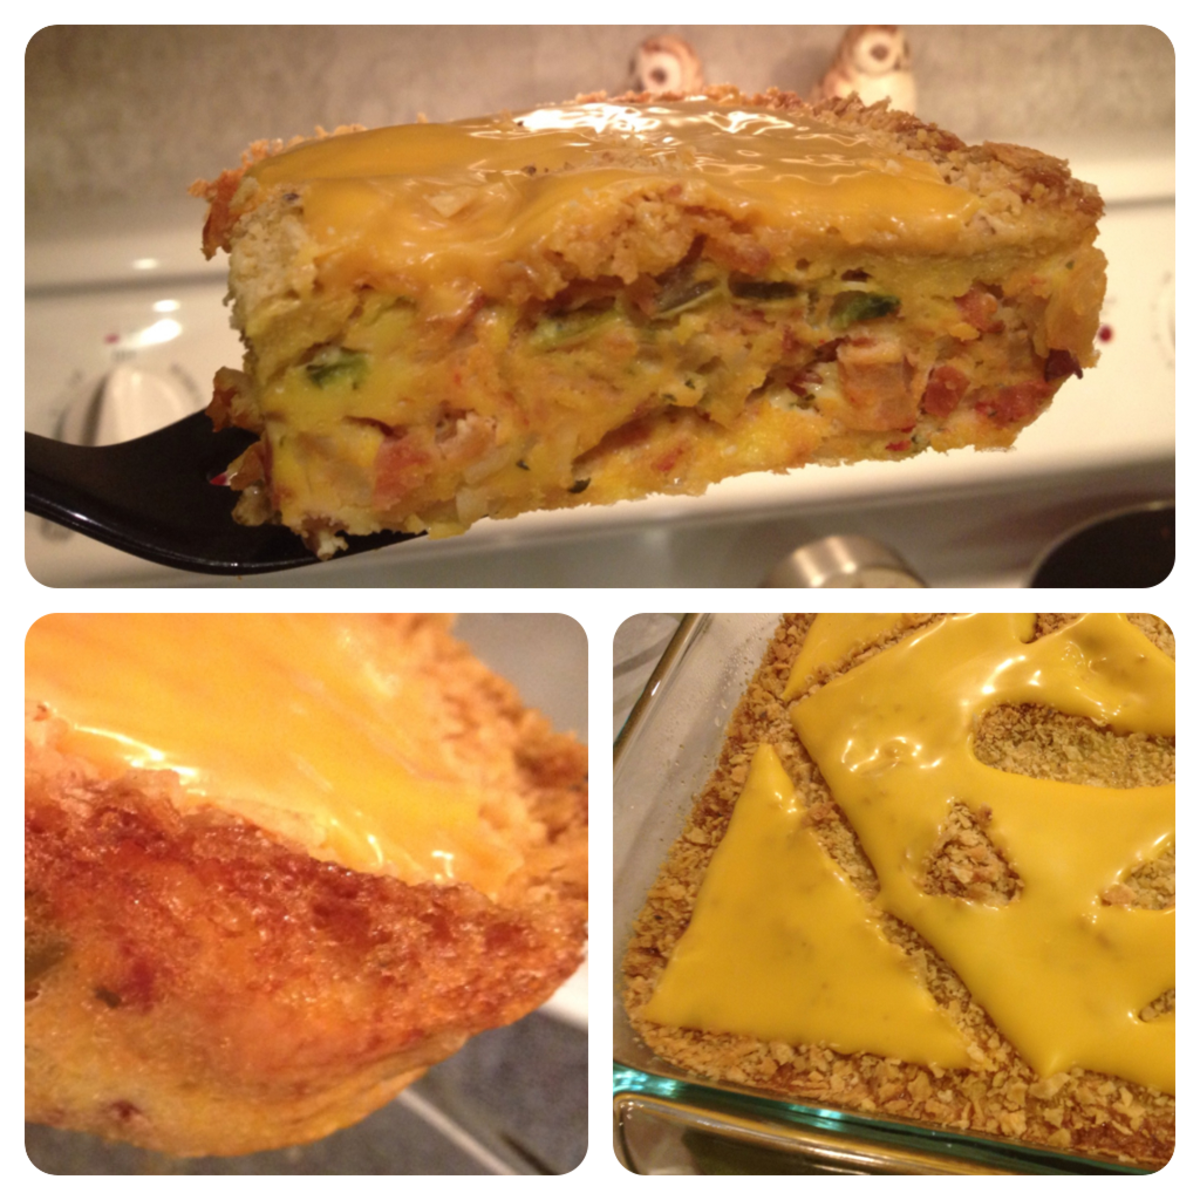 my very first crazy egg pie, although my prototype was thicker and more square